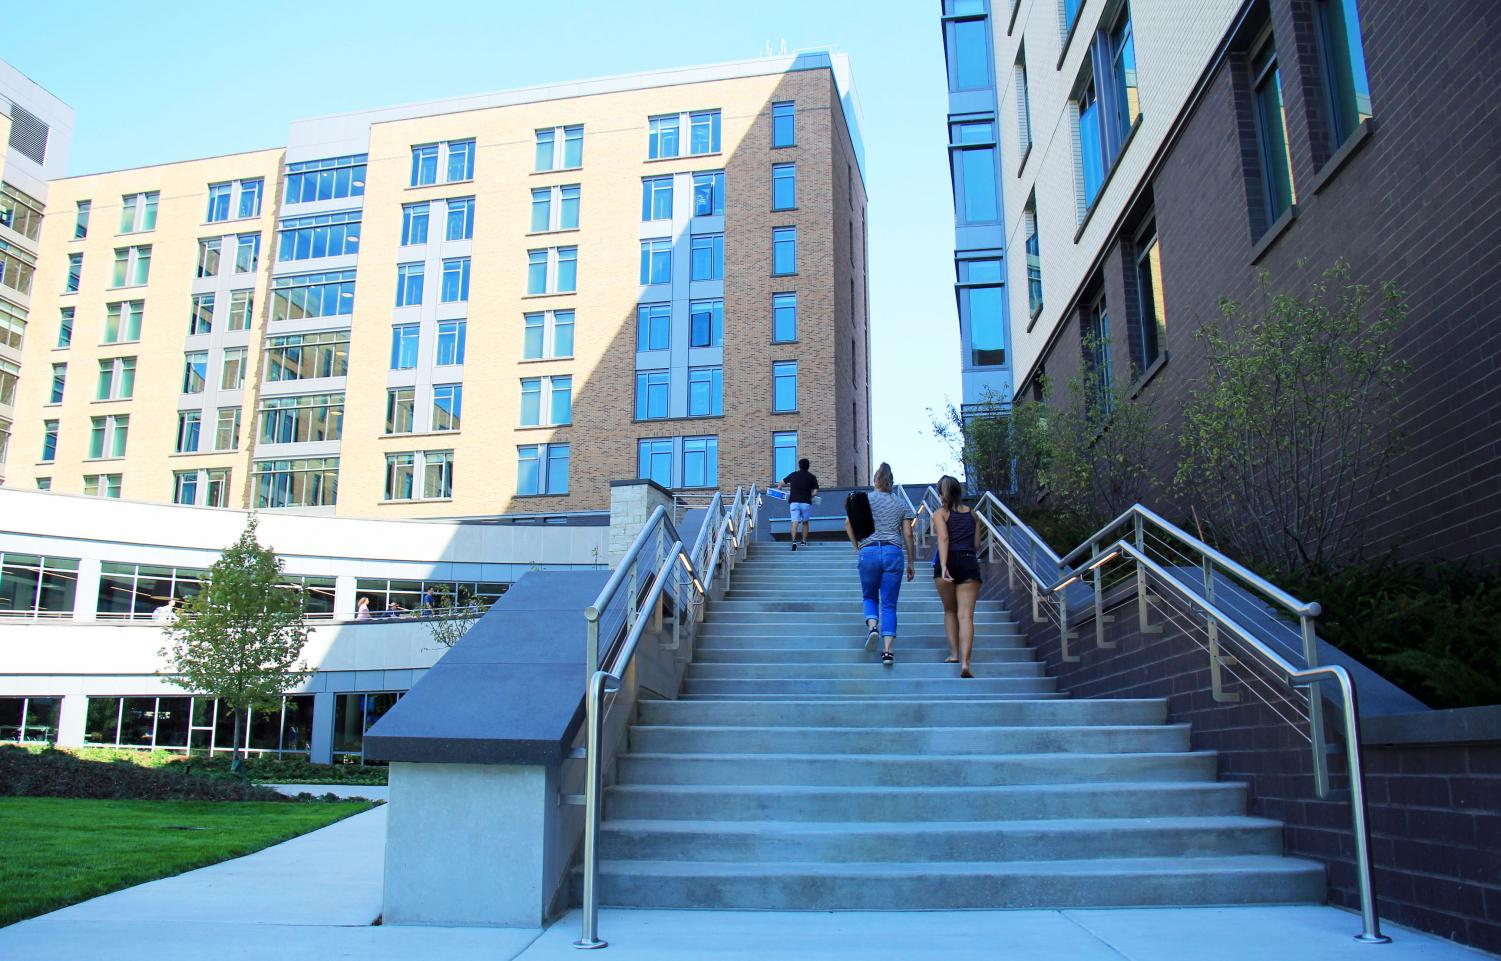 Marquette University Student Government voted on a recommendation Sept. 17 asking the university to rename The Commons residence hall after a notable Marquette community member, alumnus or alumna.